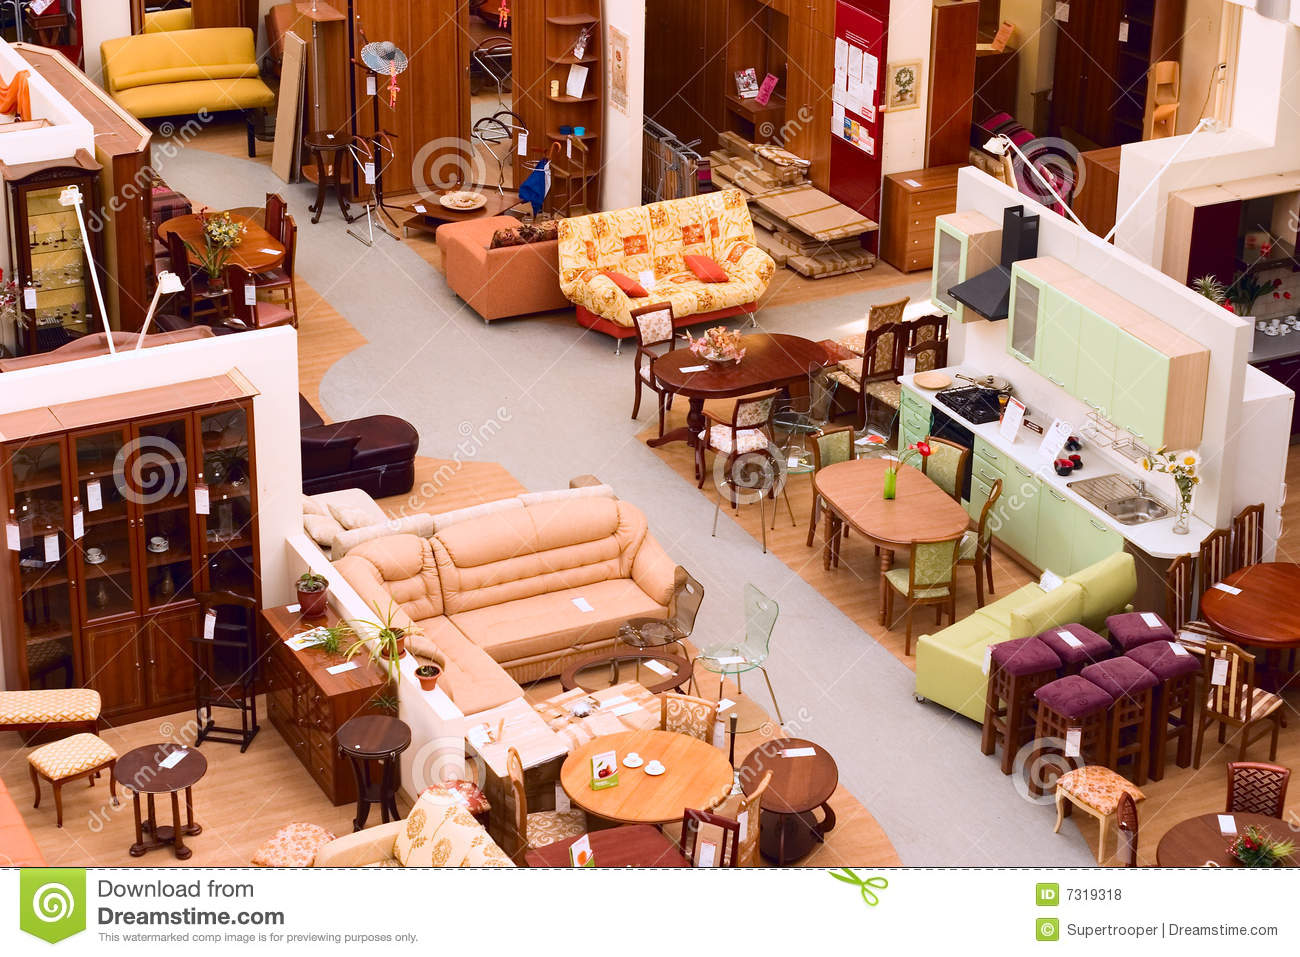 Furniture Store Royalty Free Stock Photos - Image: 7319318